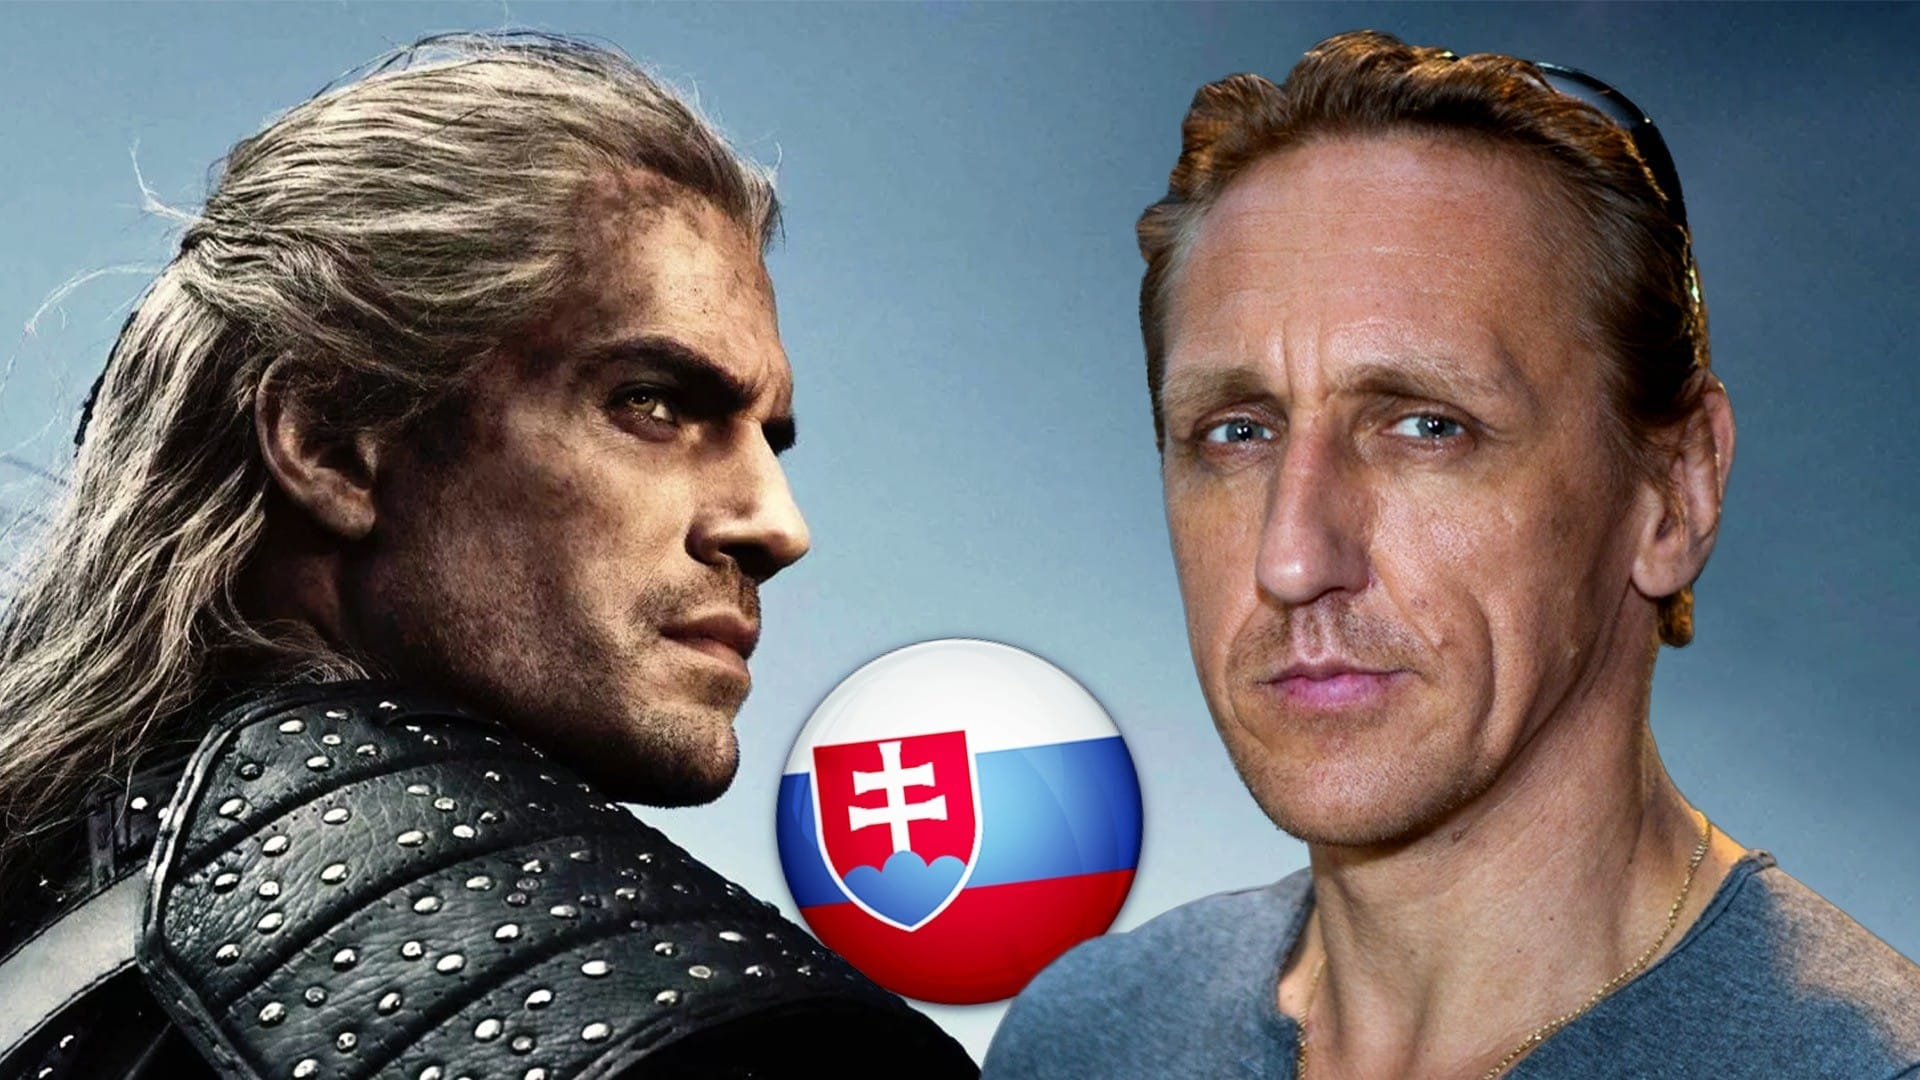 Slovak opusta serial The Witcher